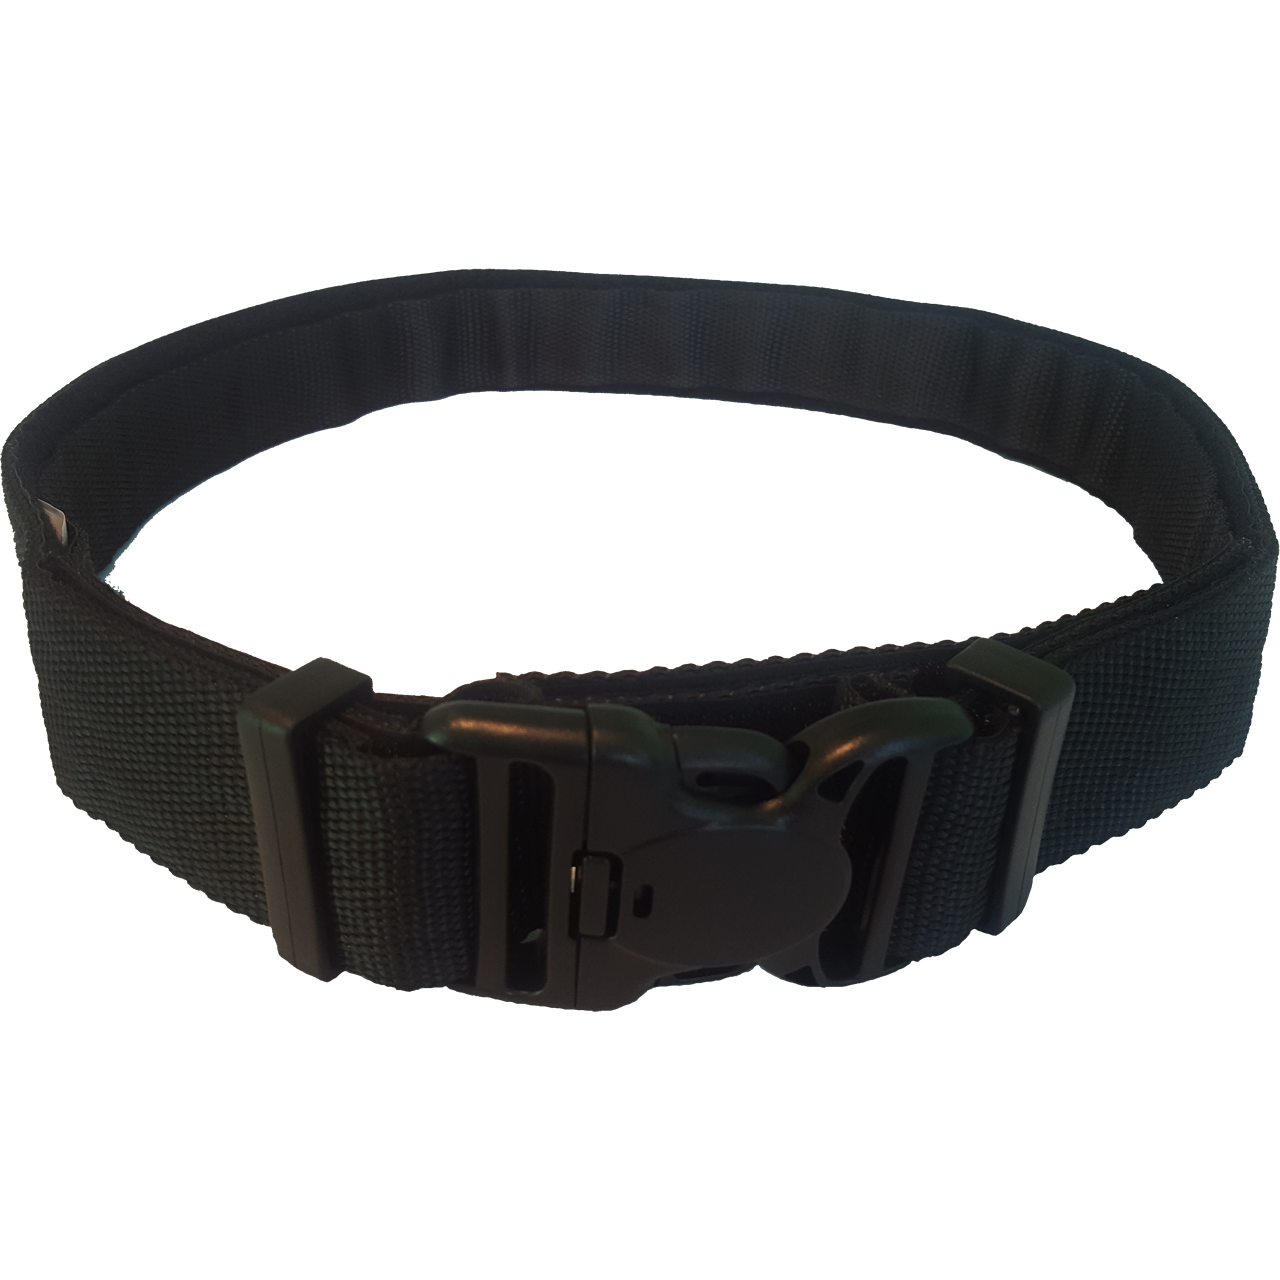 Main belt (tactical)